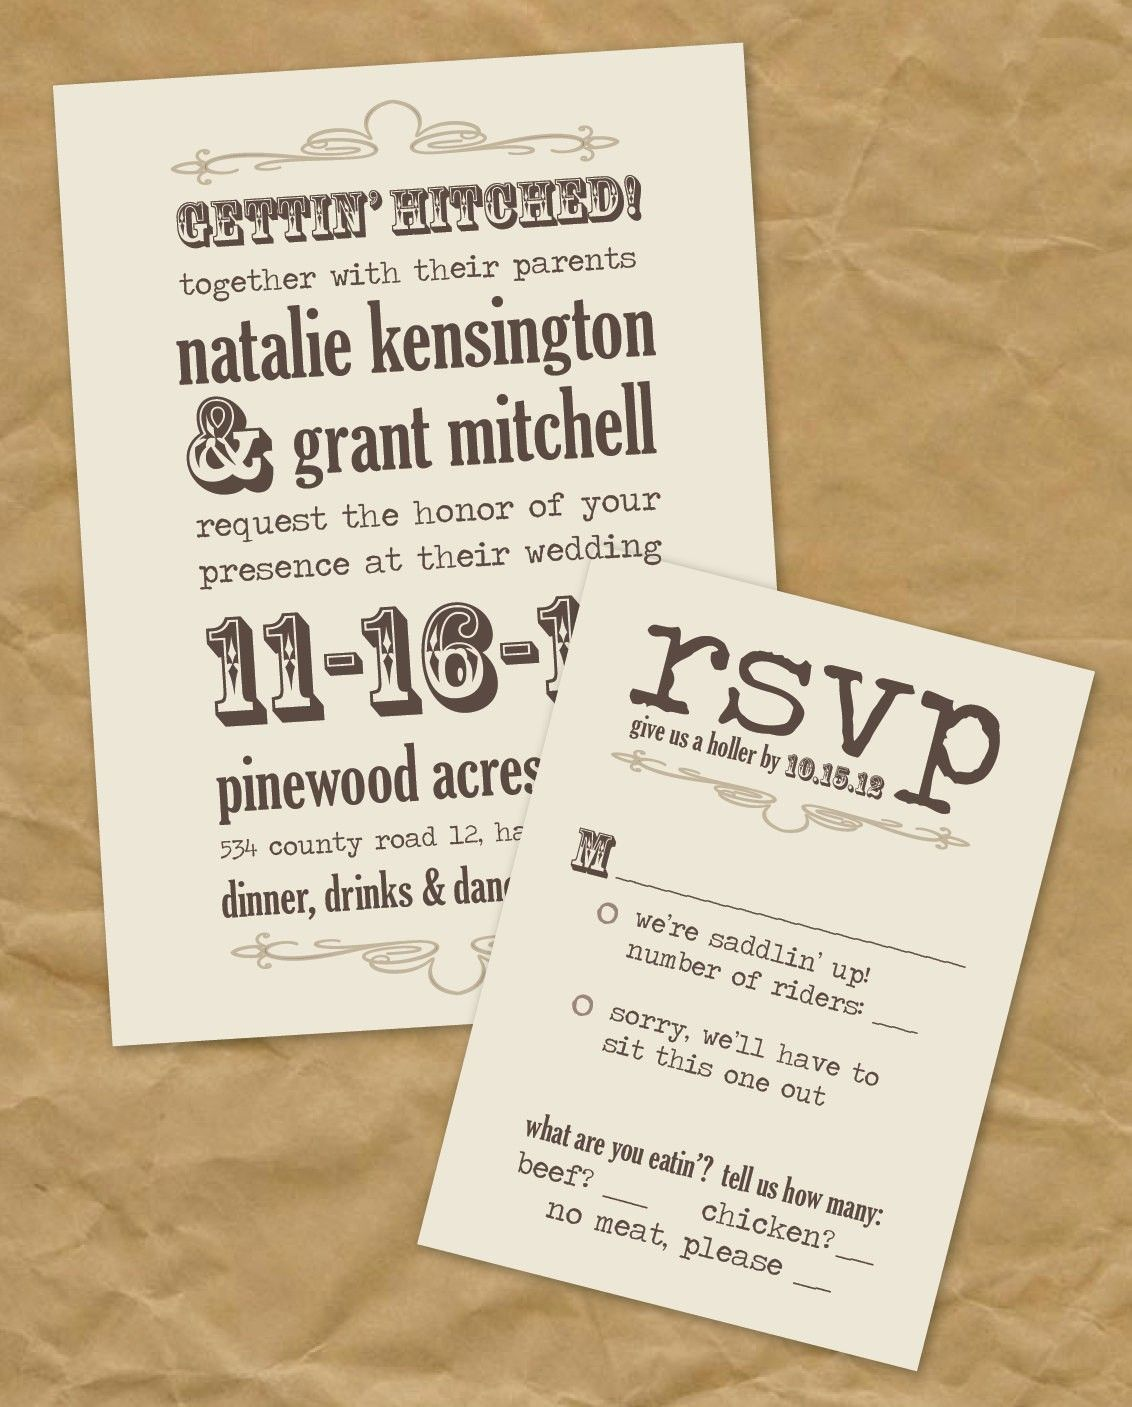 wedding invitations for a country wedding | Country Western Wedding ...